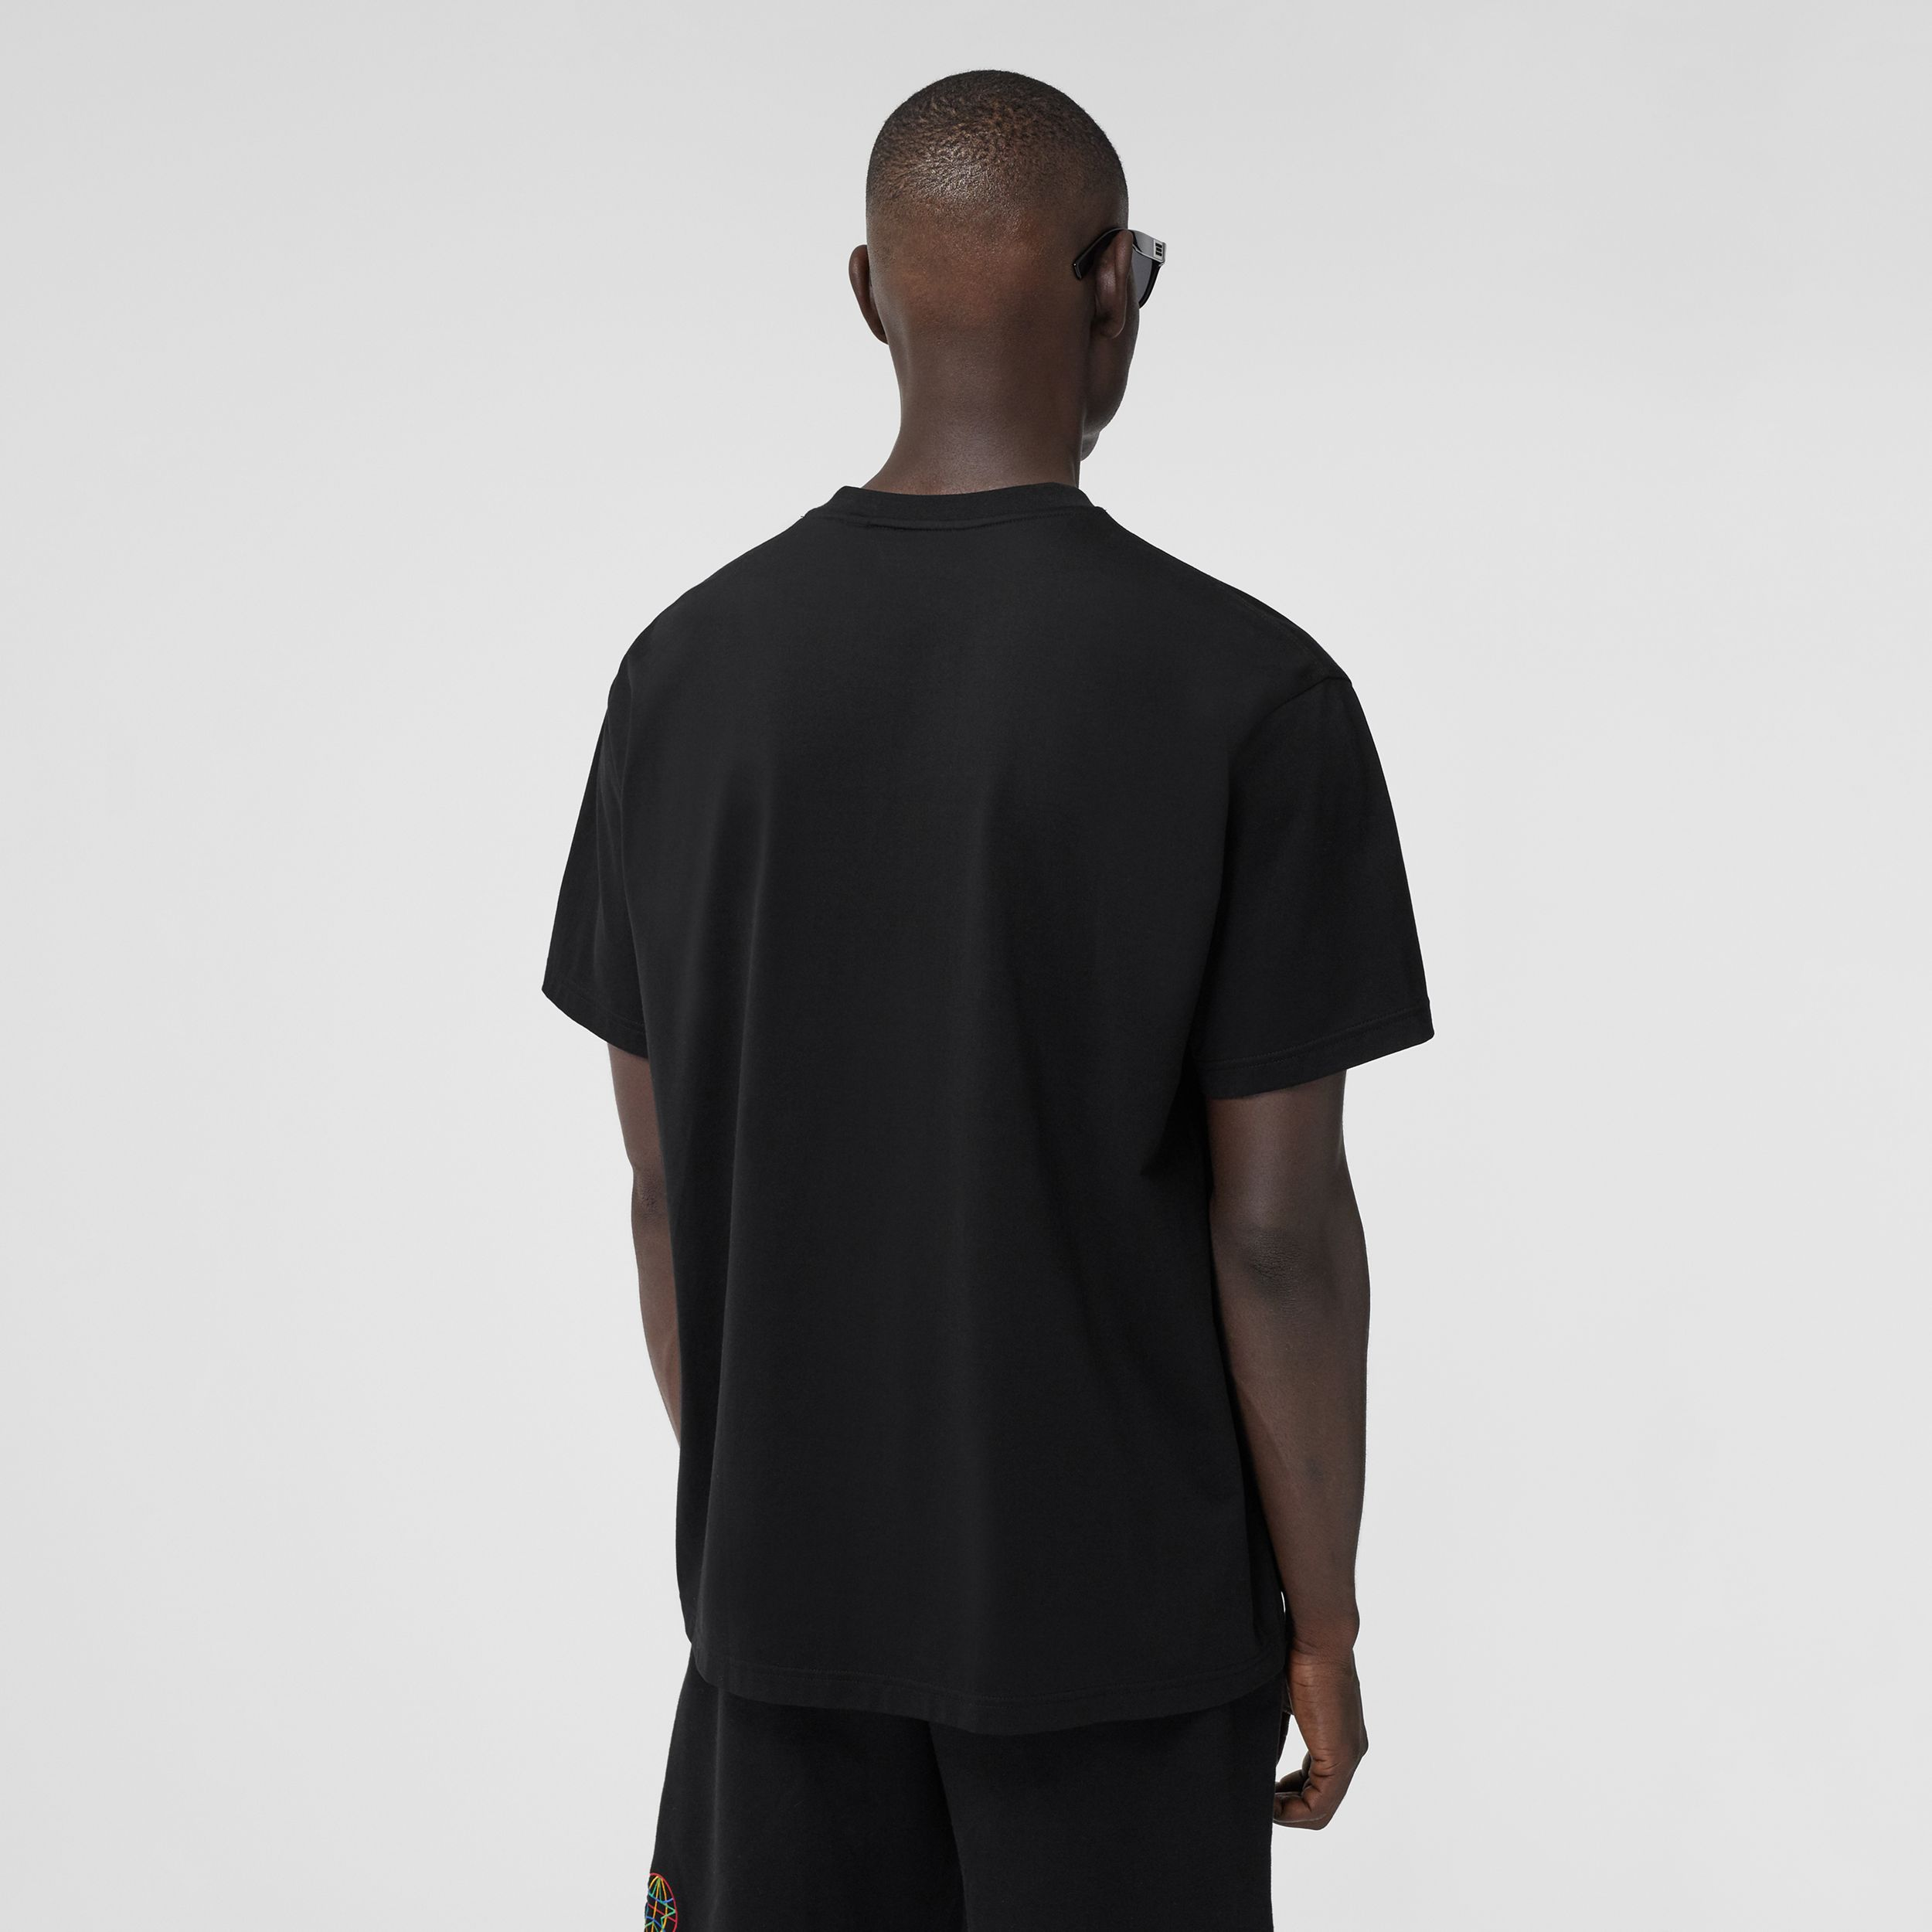 Embroidered Globe Graphic Cotton Oversized T-shirt in Black - Men | Burberry Australia - 3